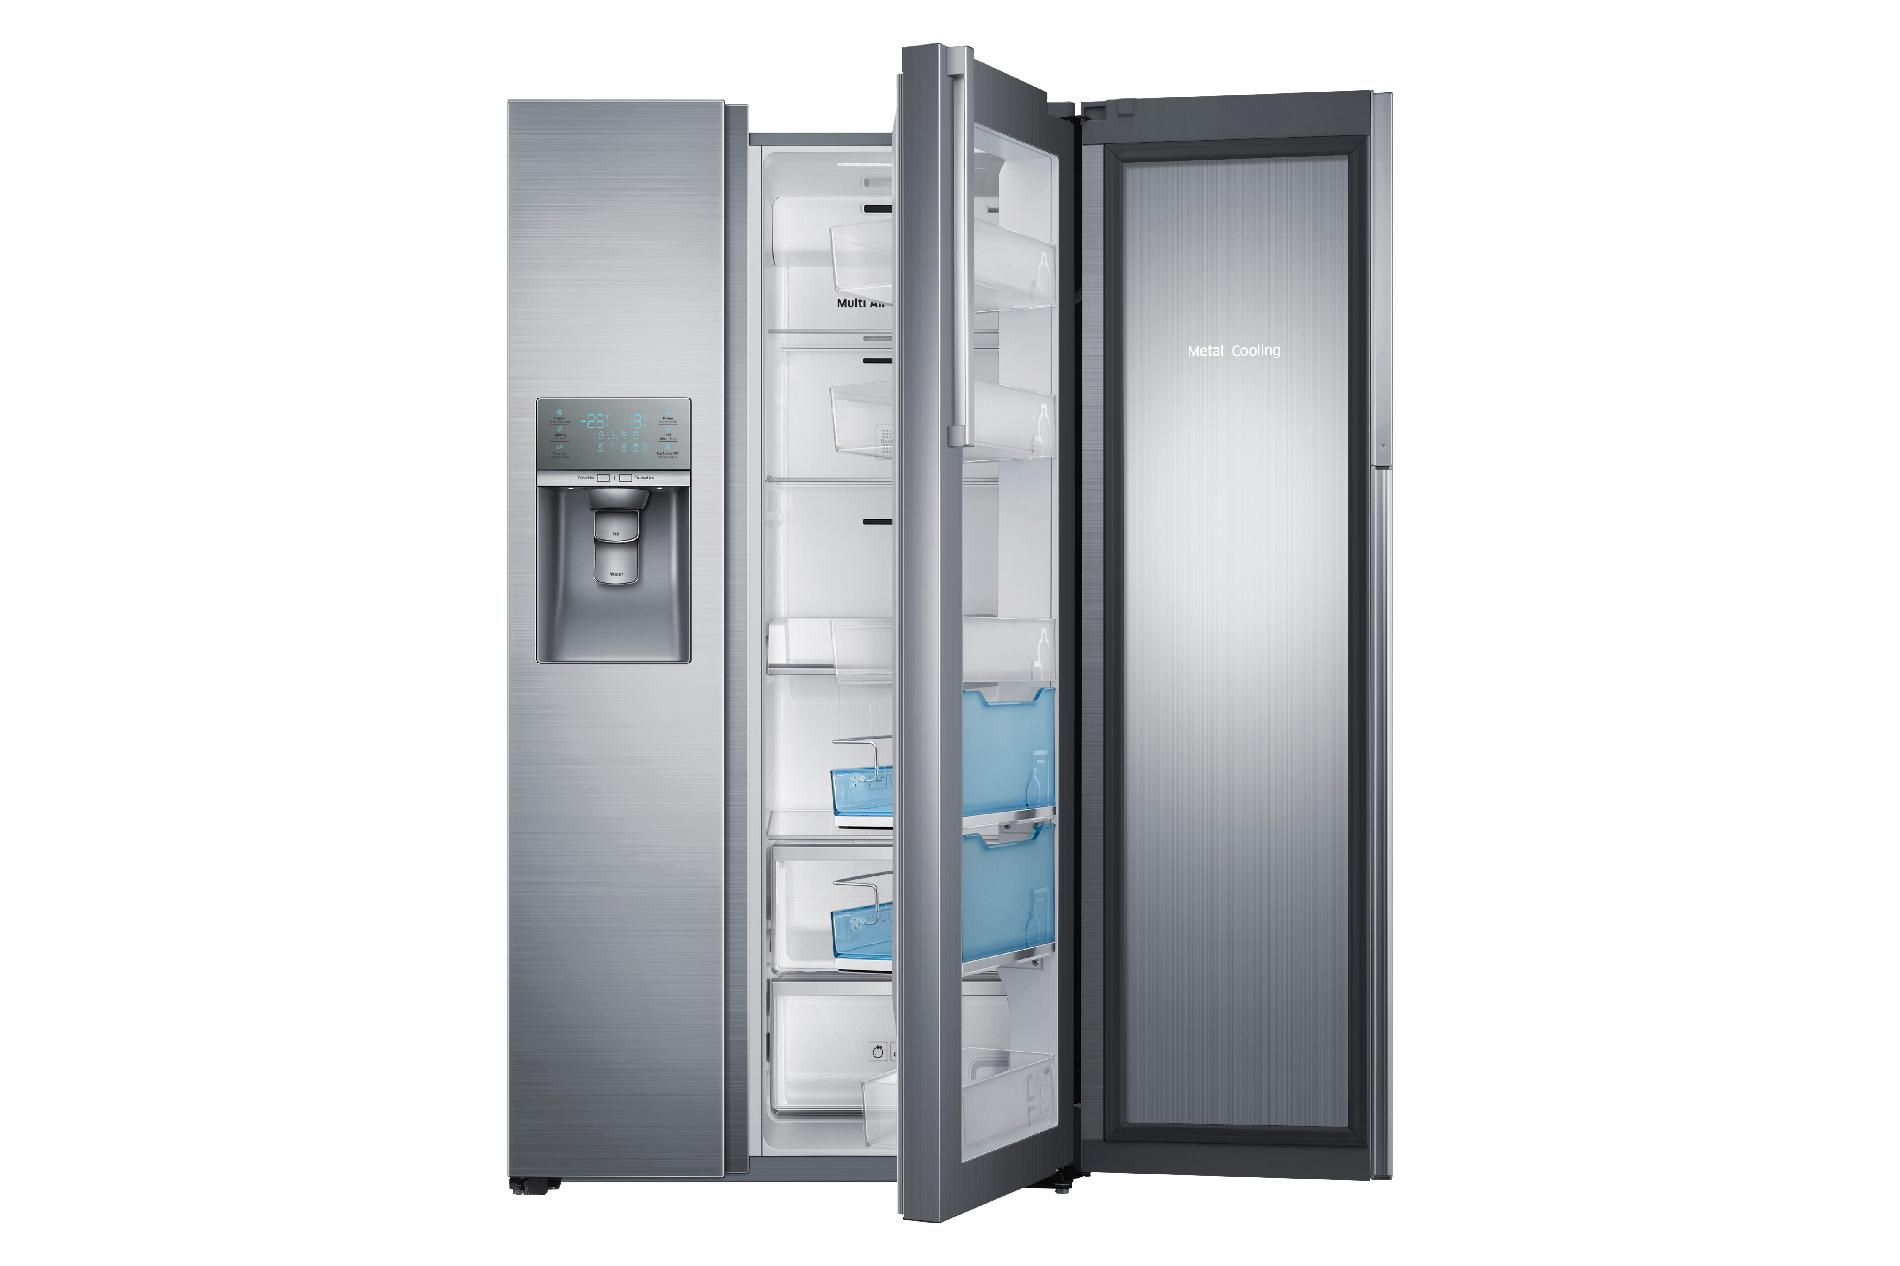 Samsung 29 cu. ft. Side-by-Side Food ShowCase Refrigerator - Stainless Steel